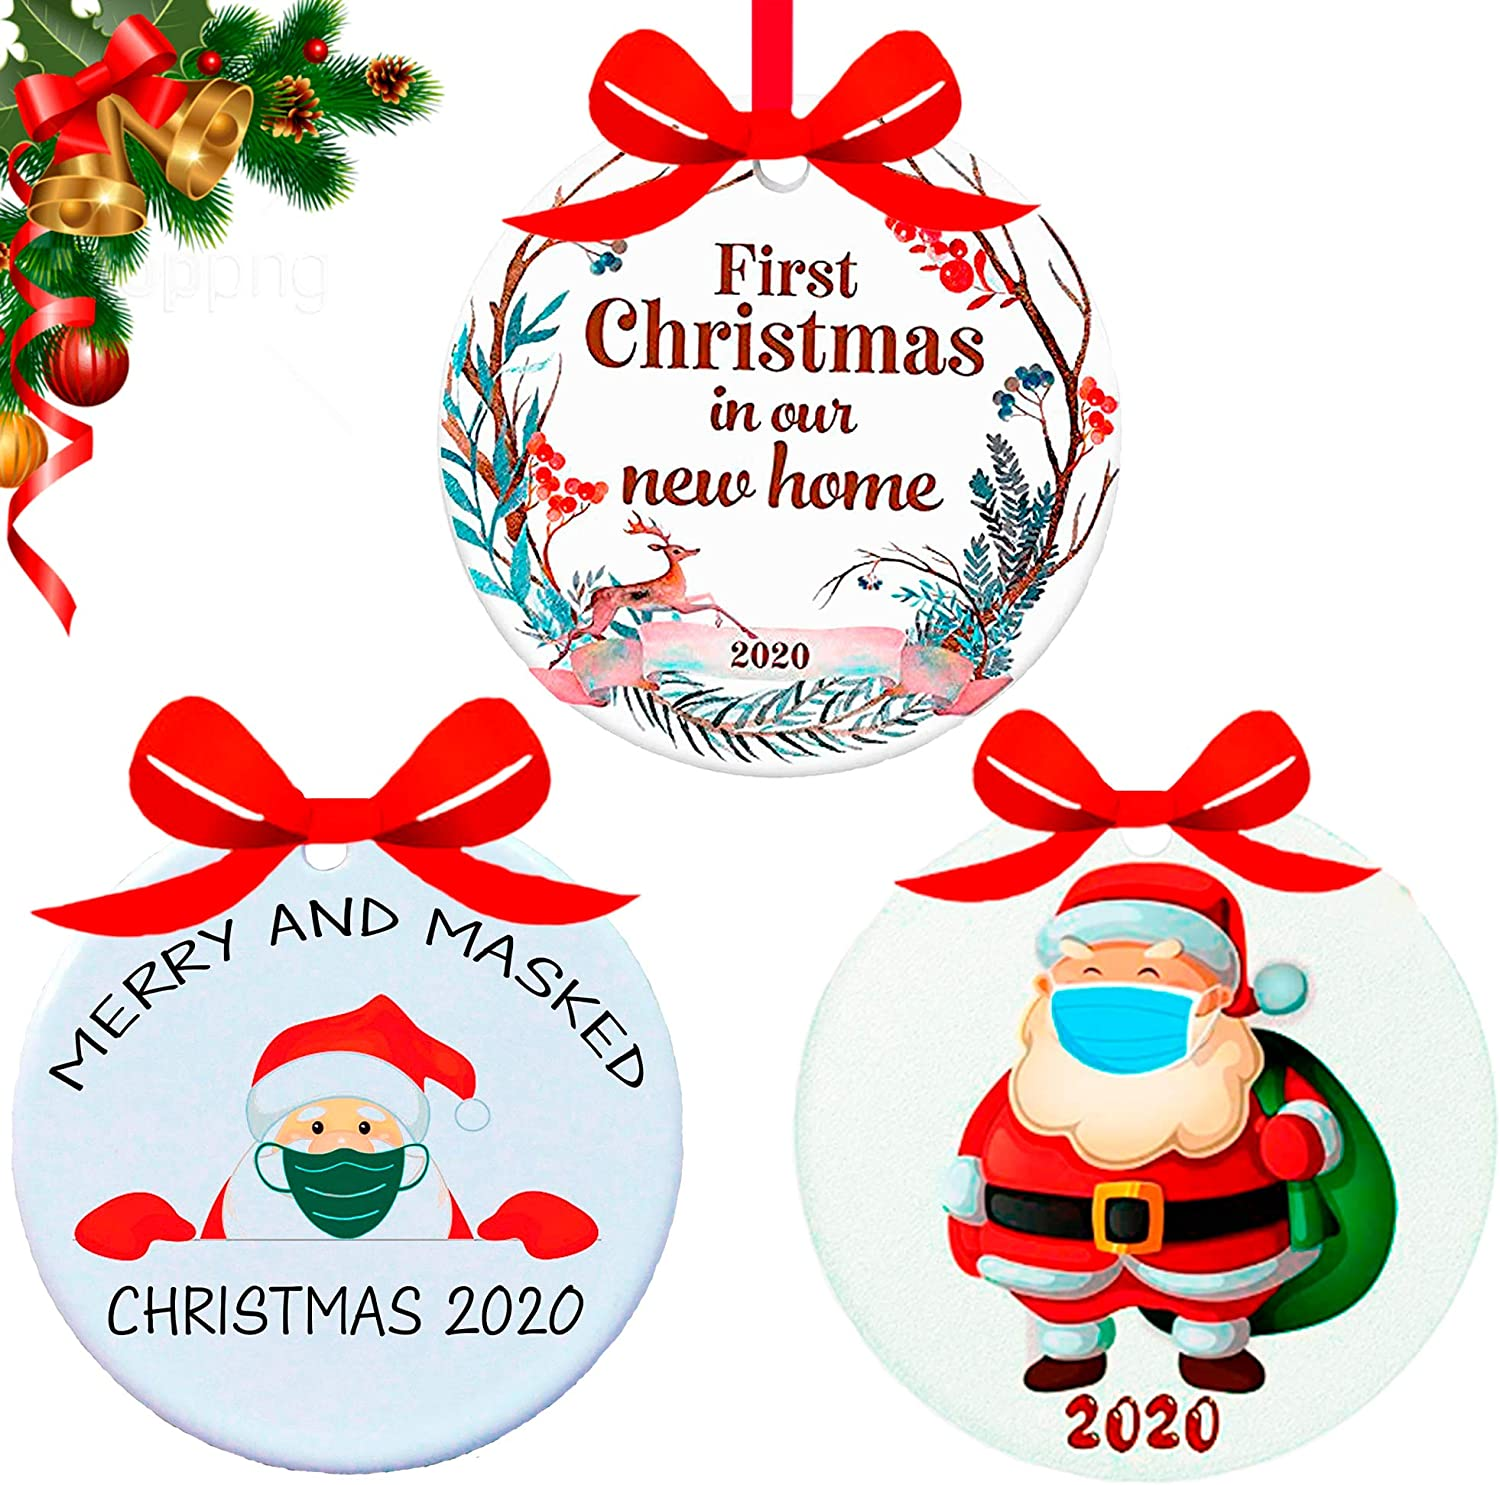 Holysun Set of 3 Christmas Ornaments 2020 | First Christmas in Our New Home | Funny Santa Claus Christmas Ornament | Holiday Xmas Home&Tree Decorations Ornament